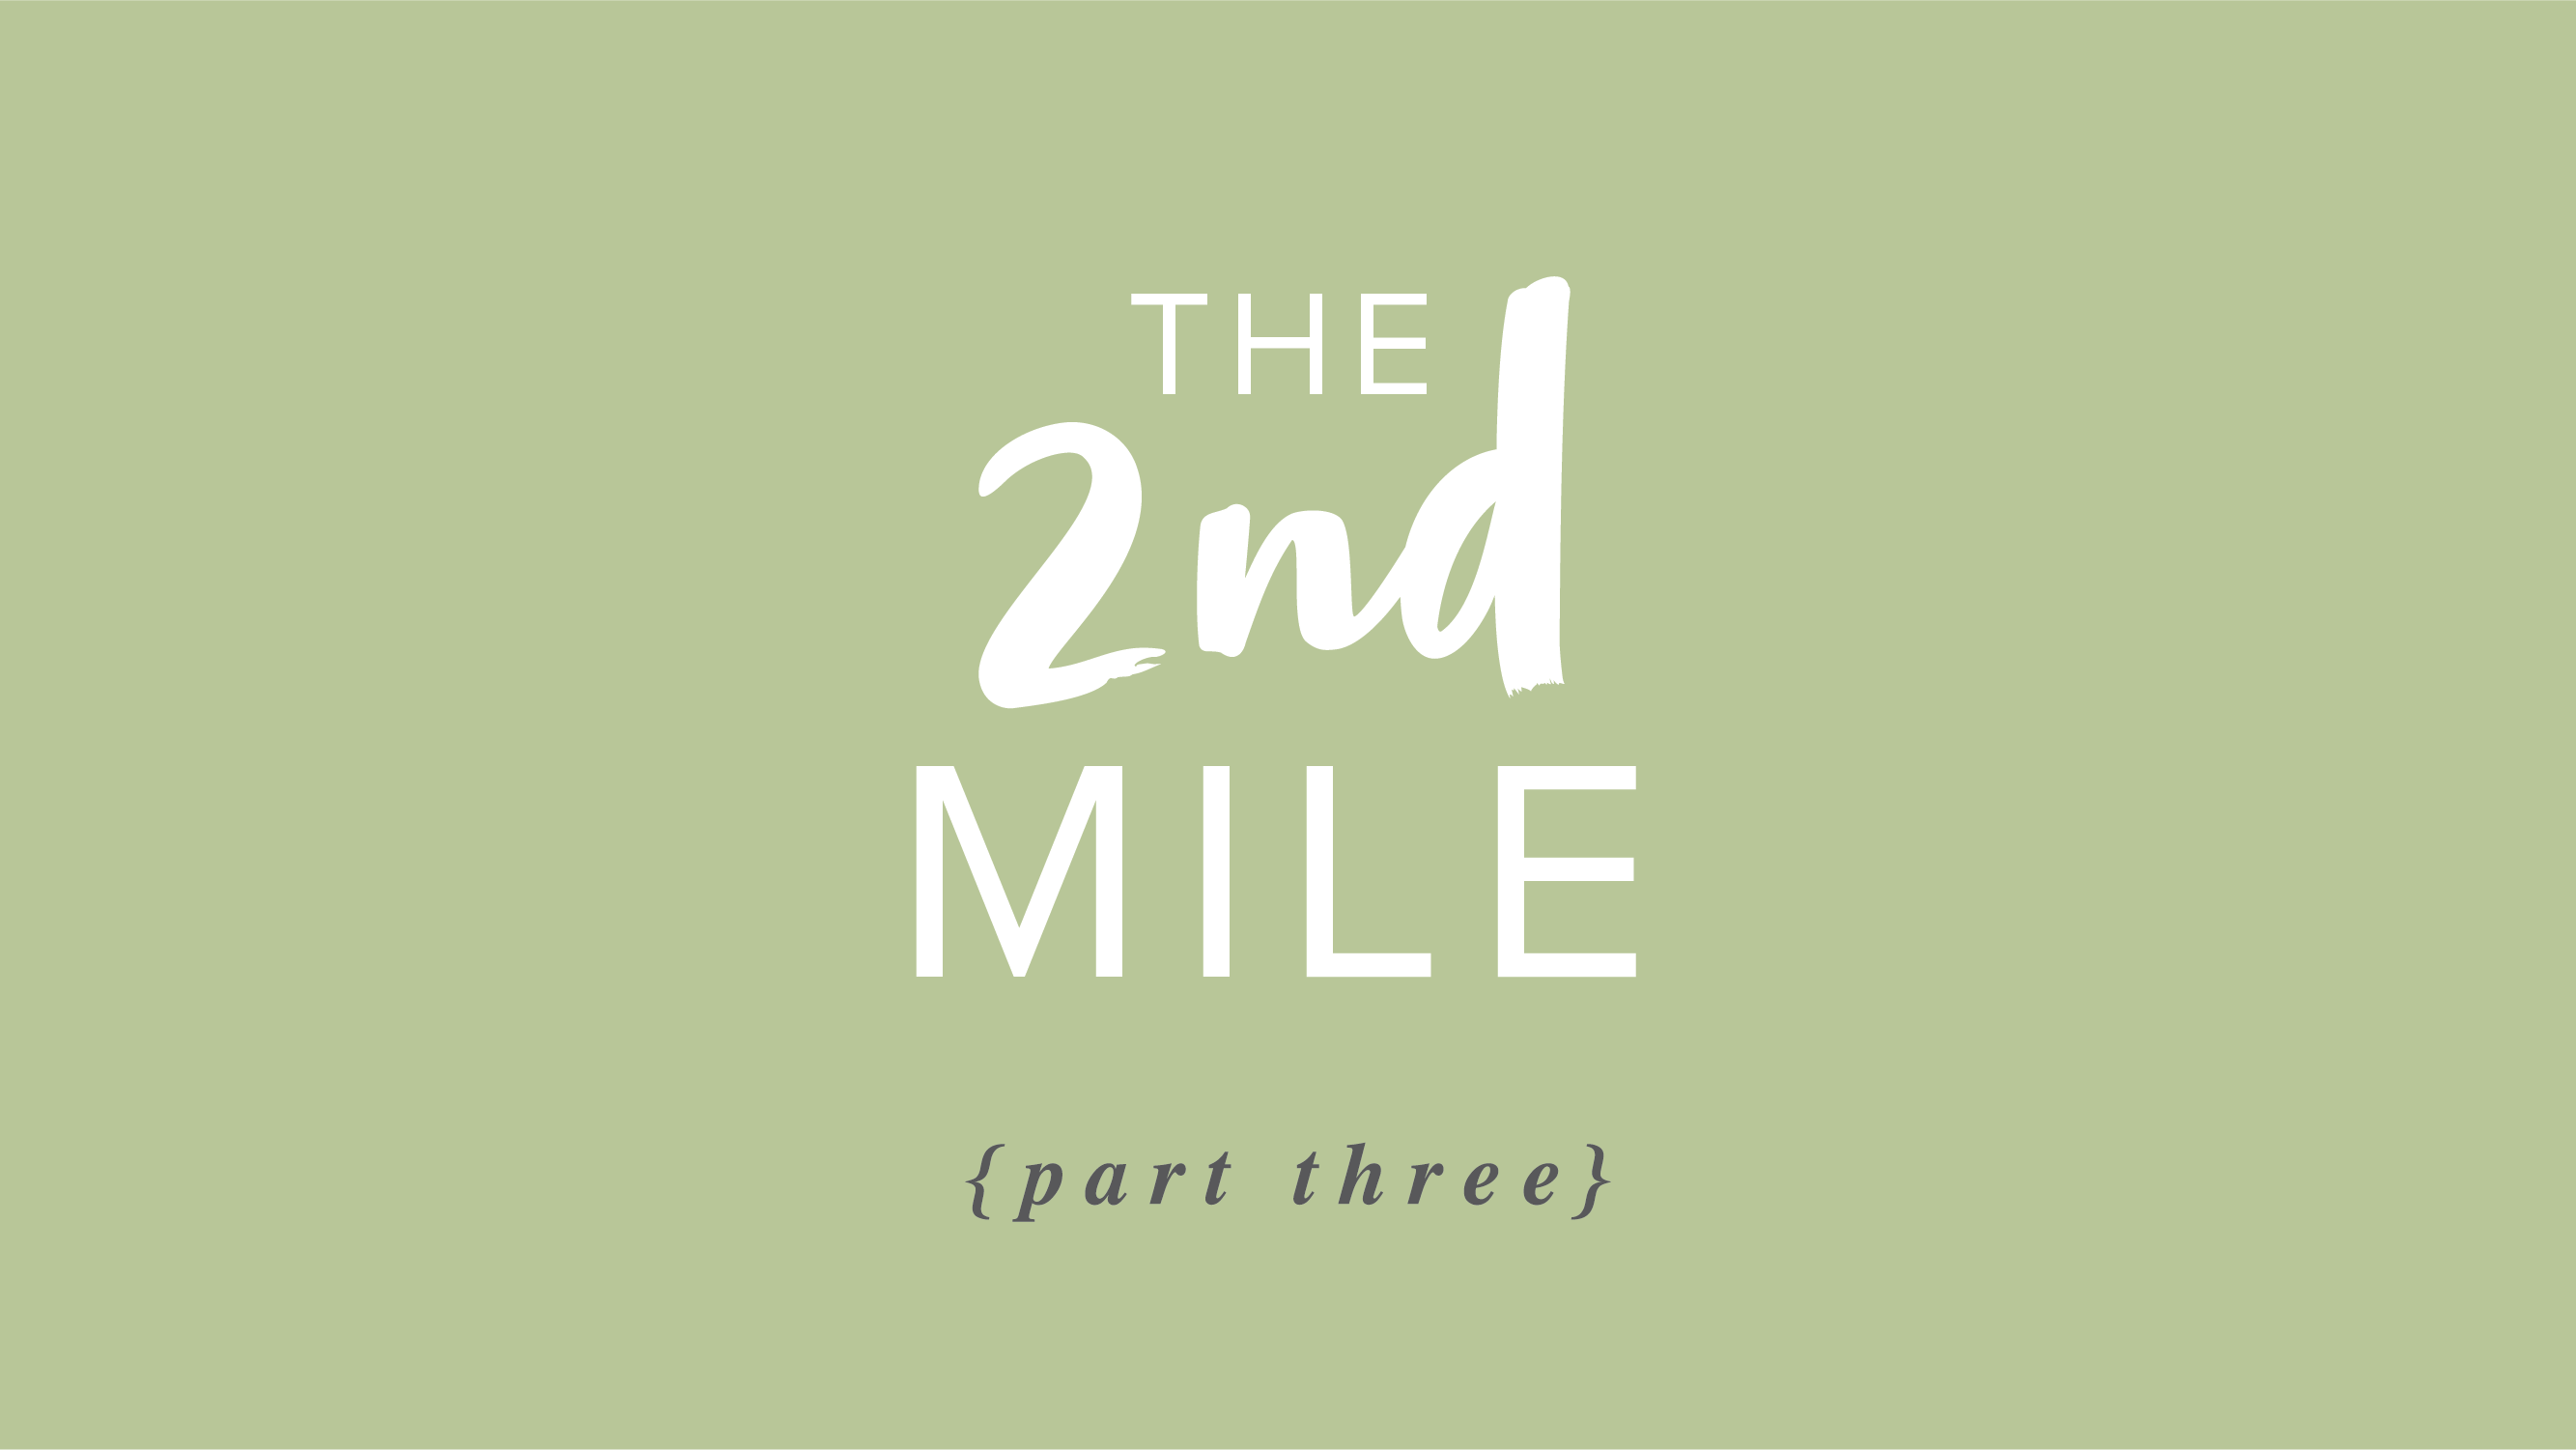 The 2nd Mile – Part 3